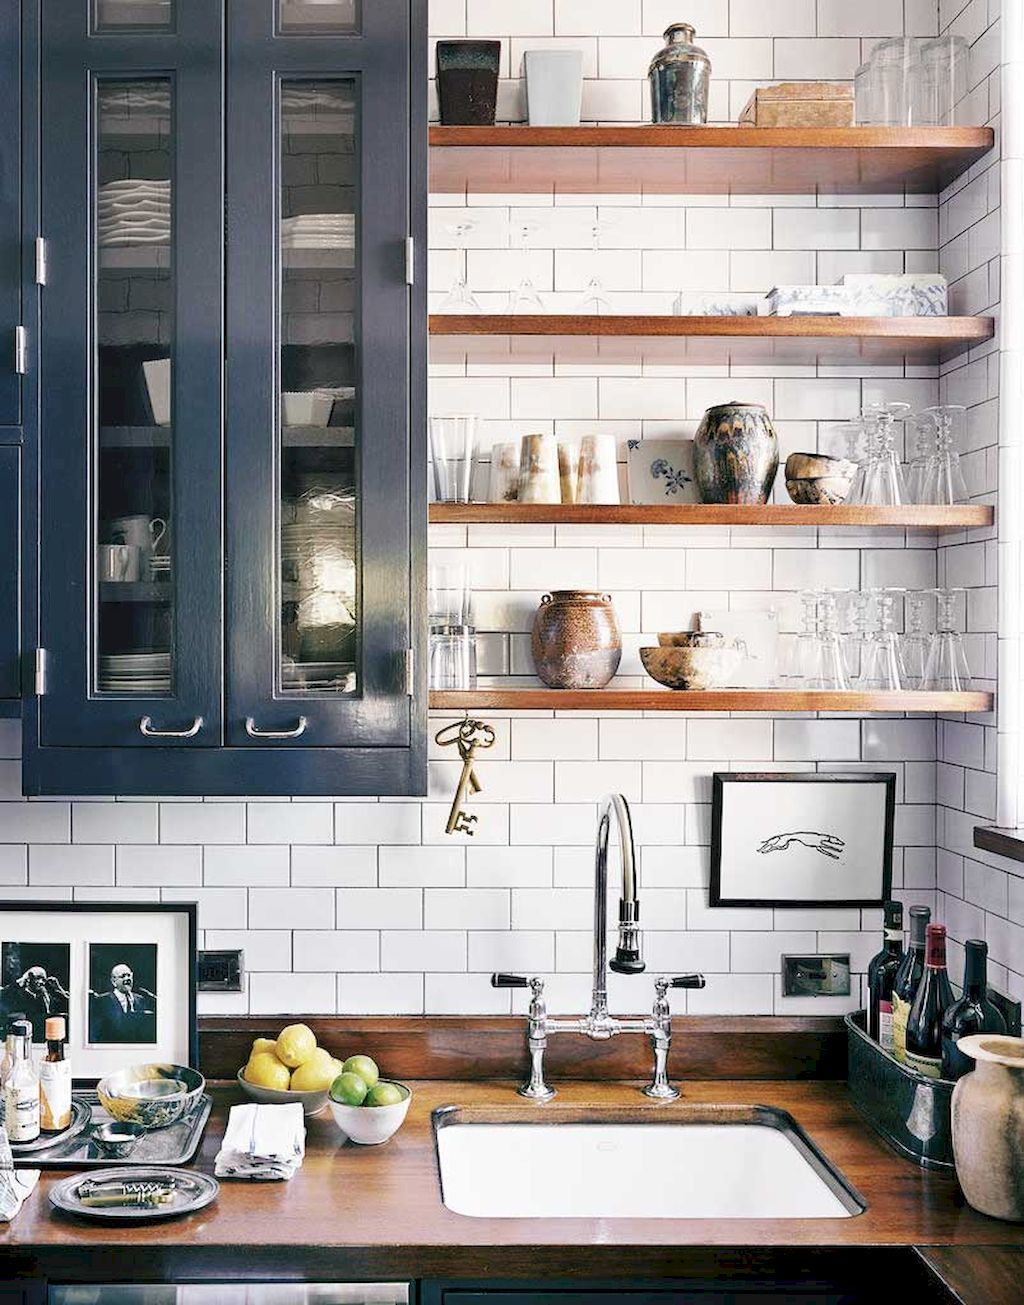 Best Top 60 Eclectic Kitchen Ideas 53 Eclectic Kitchen 400 x 300